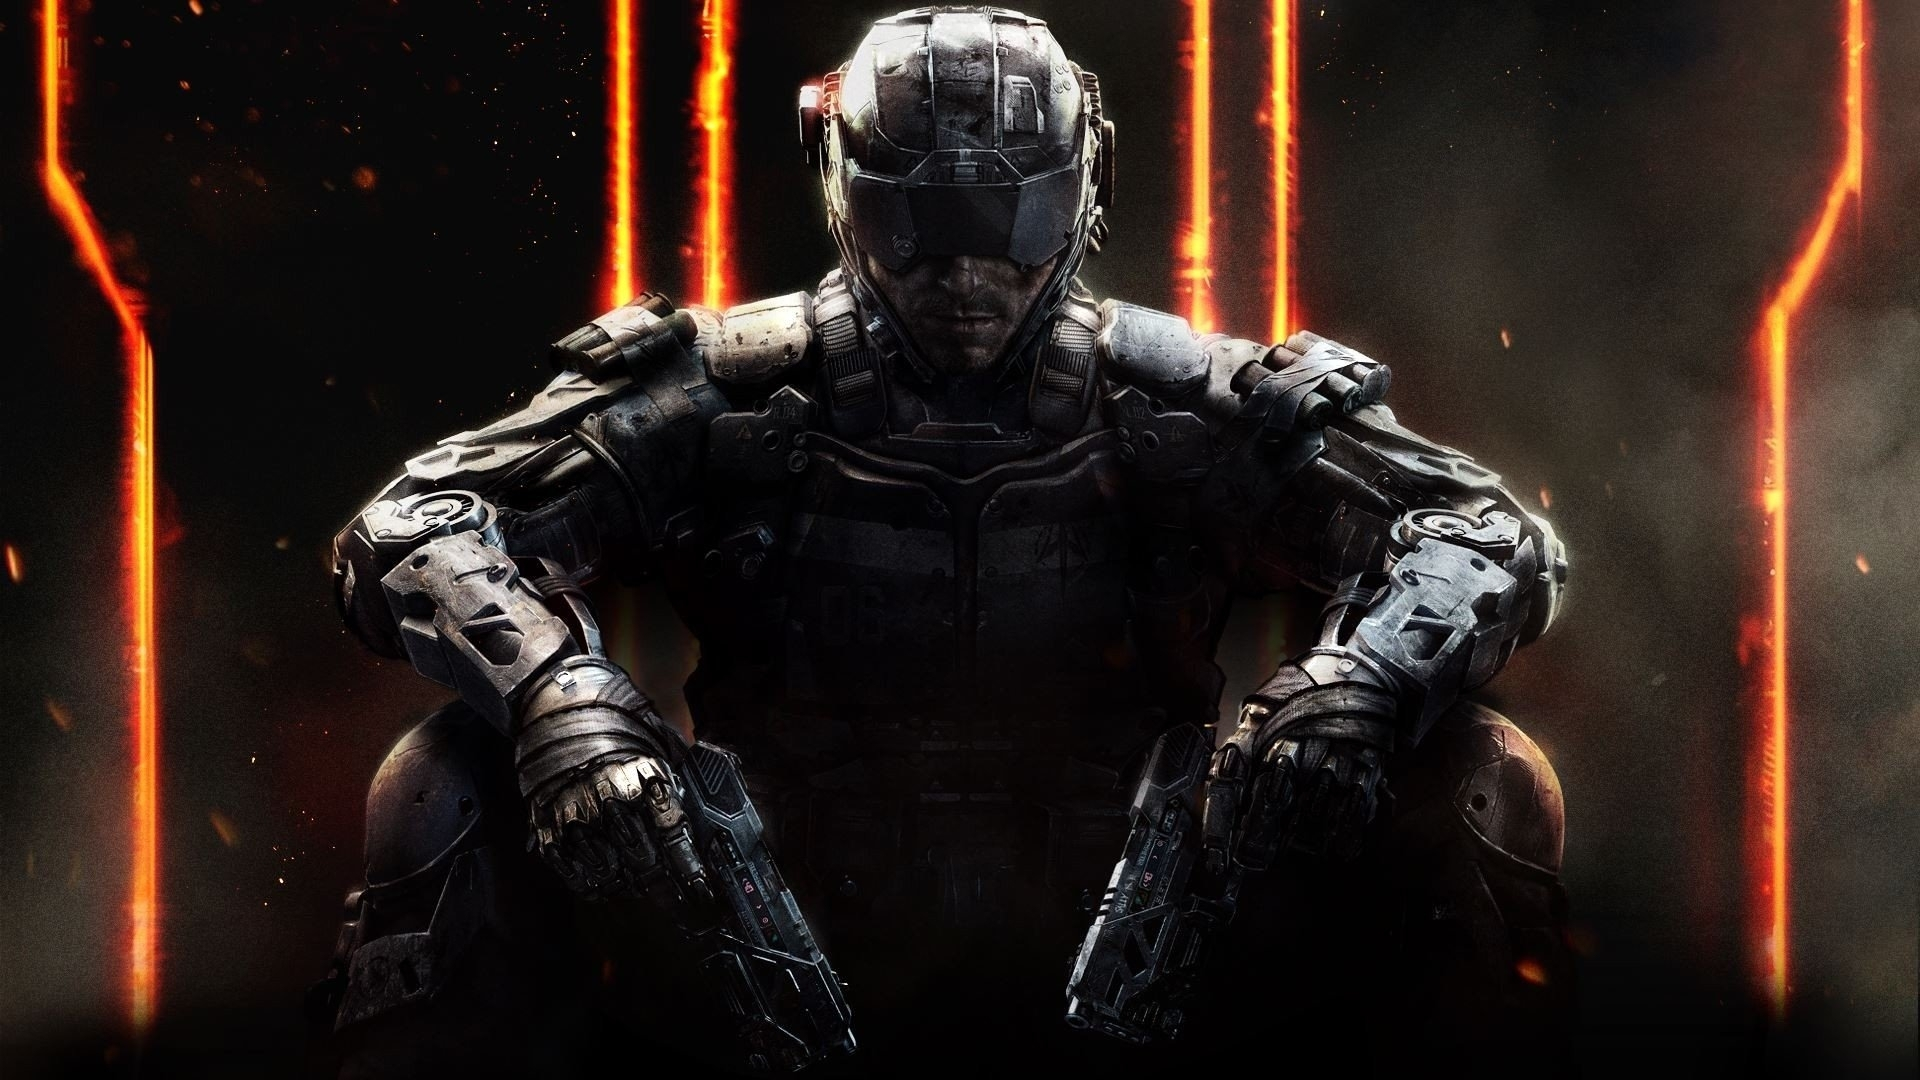 72 call of duty: black ops iii hd wallpapers | background images